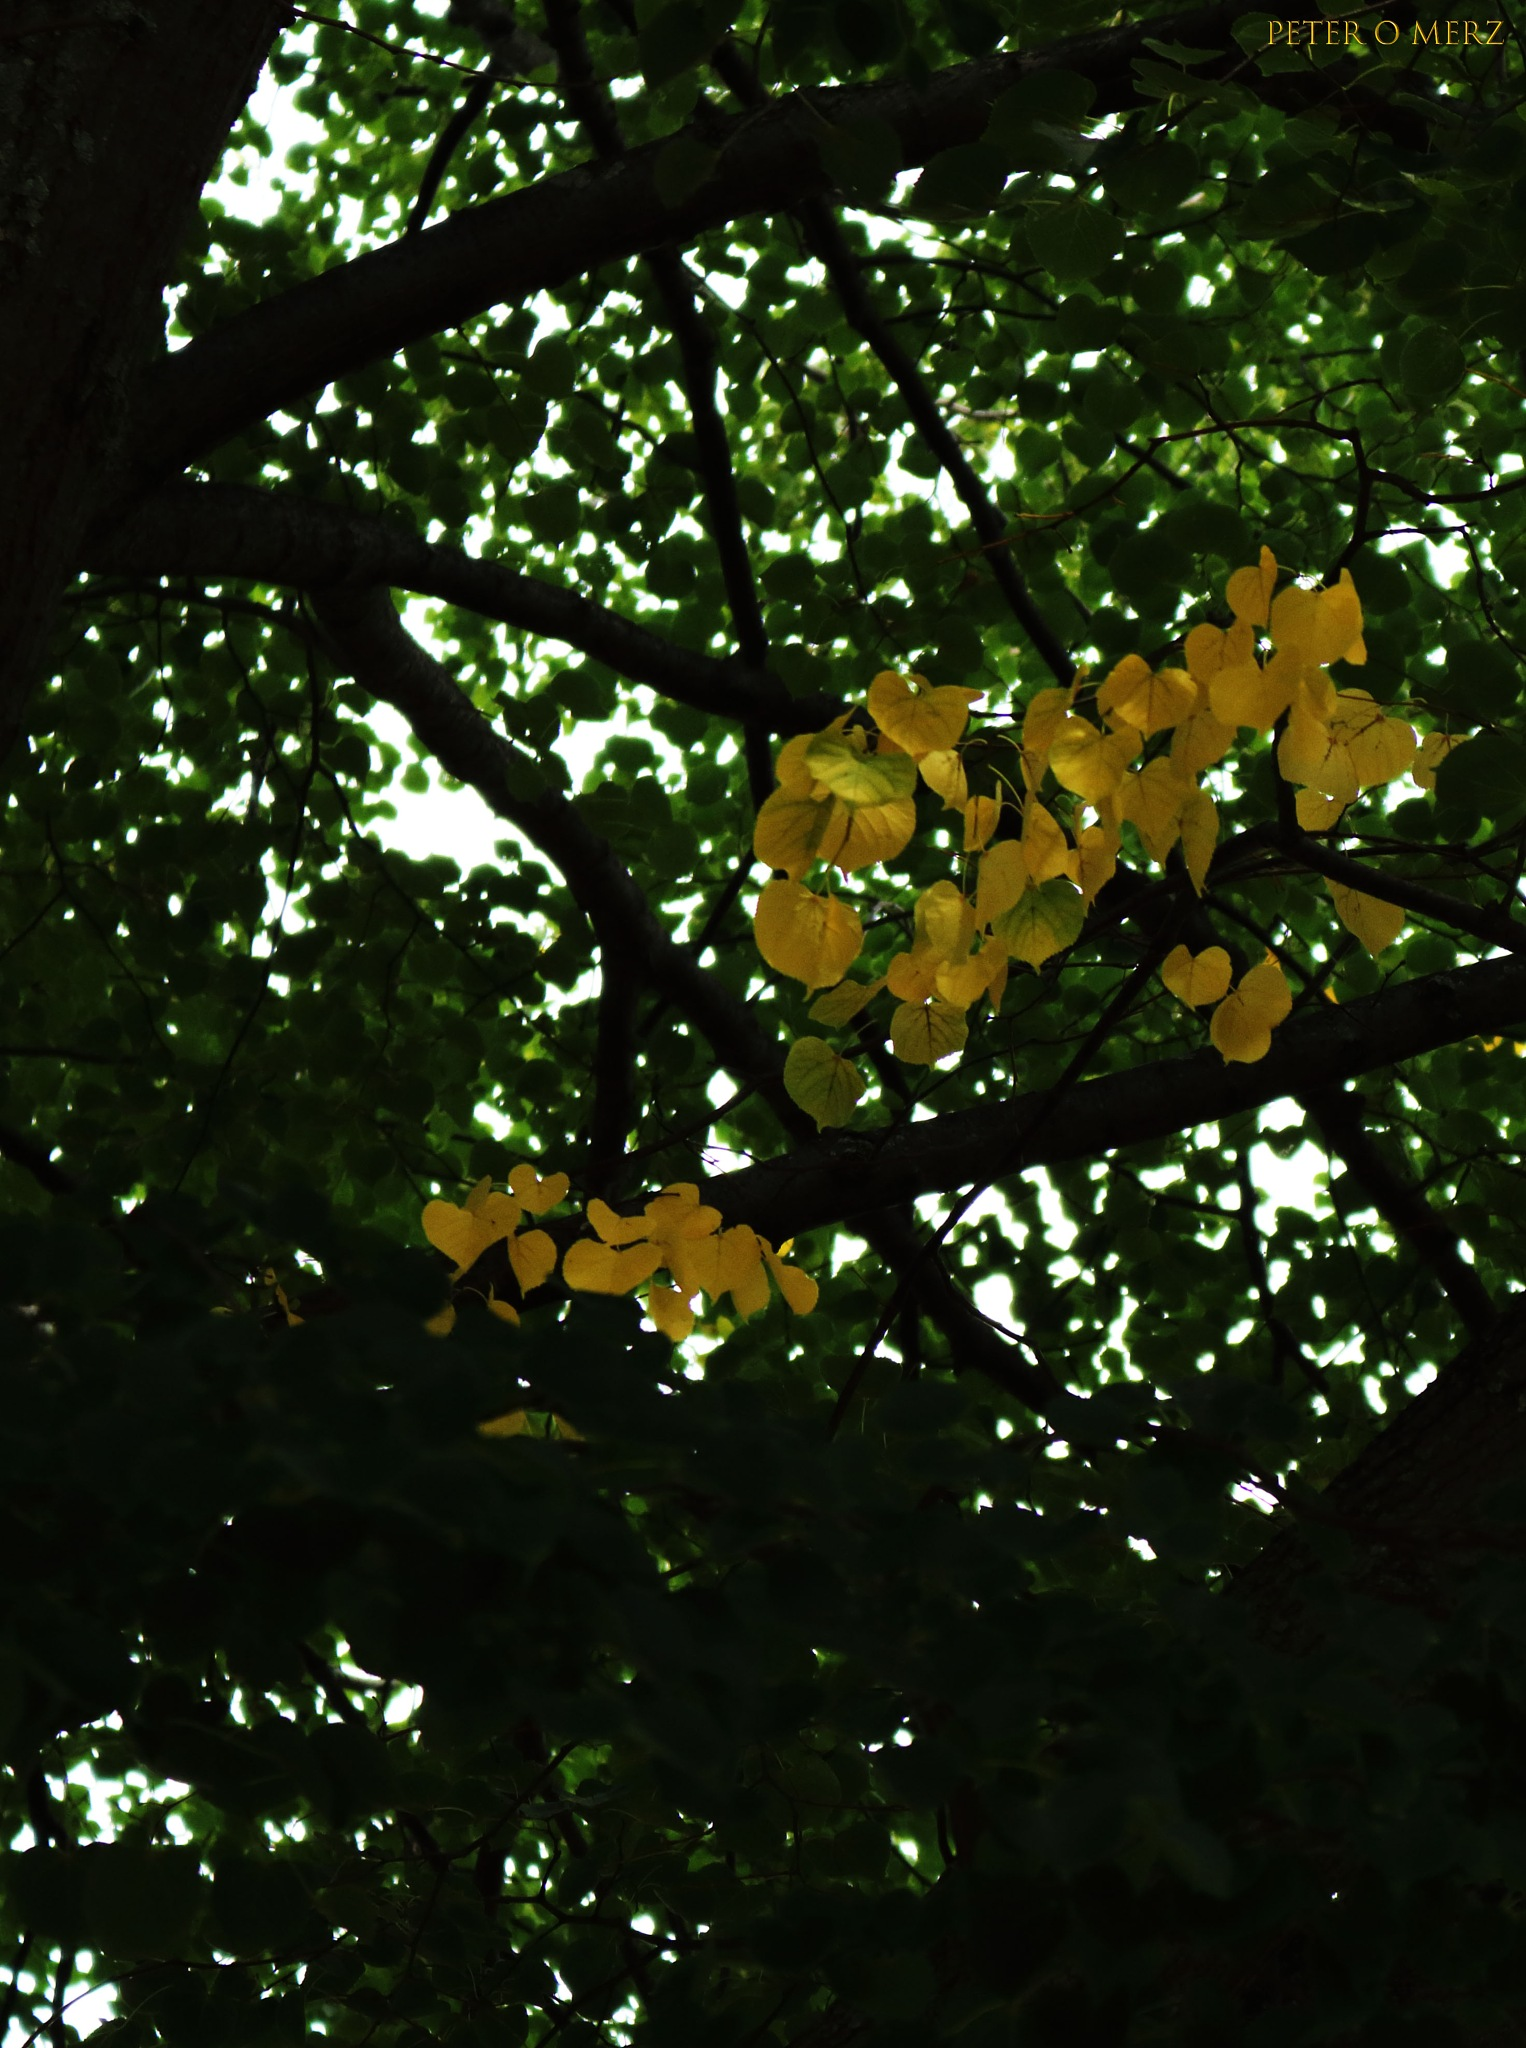 yellow in a sea of green by Peter O Merz